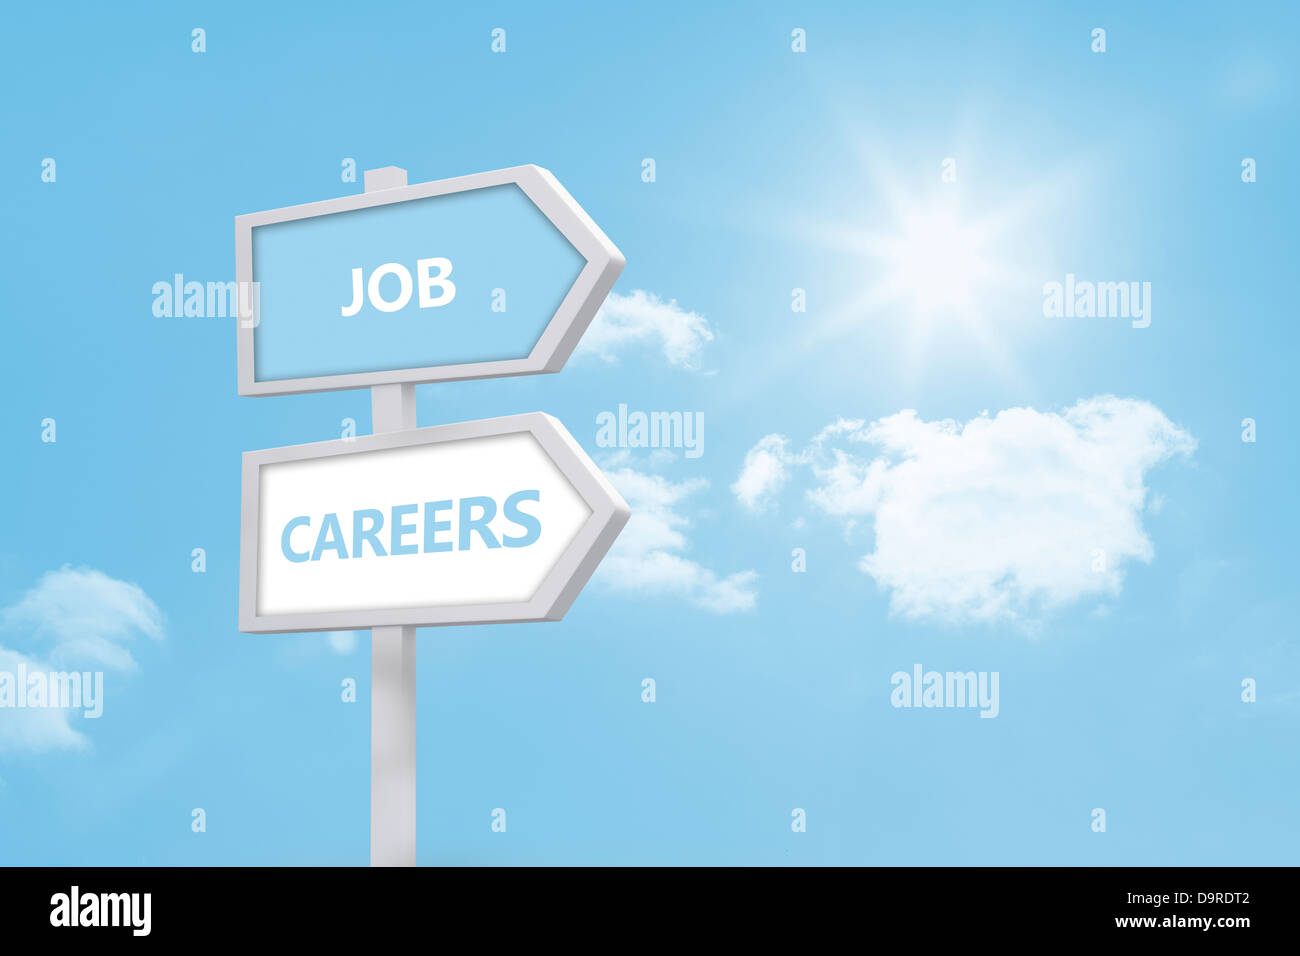 Job and careers road sign Stock Photo